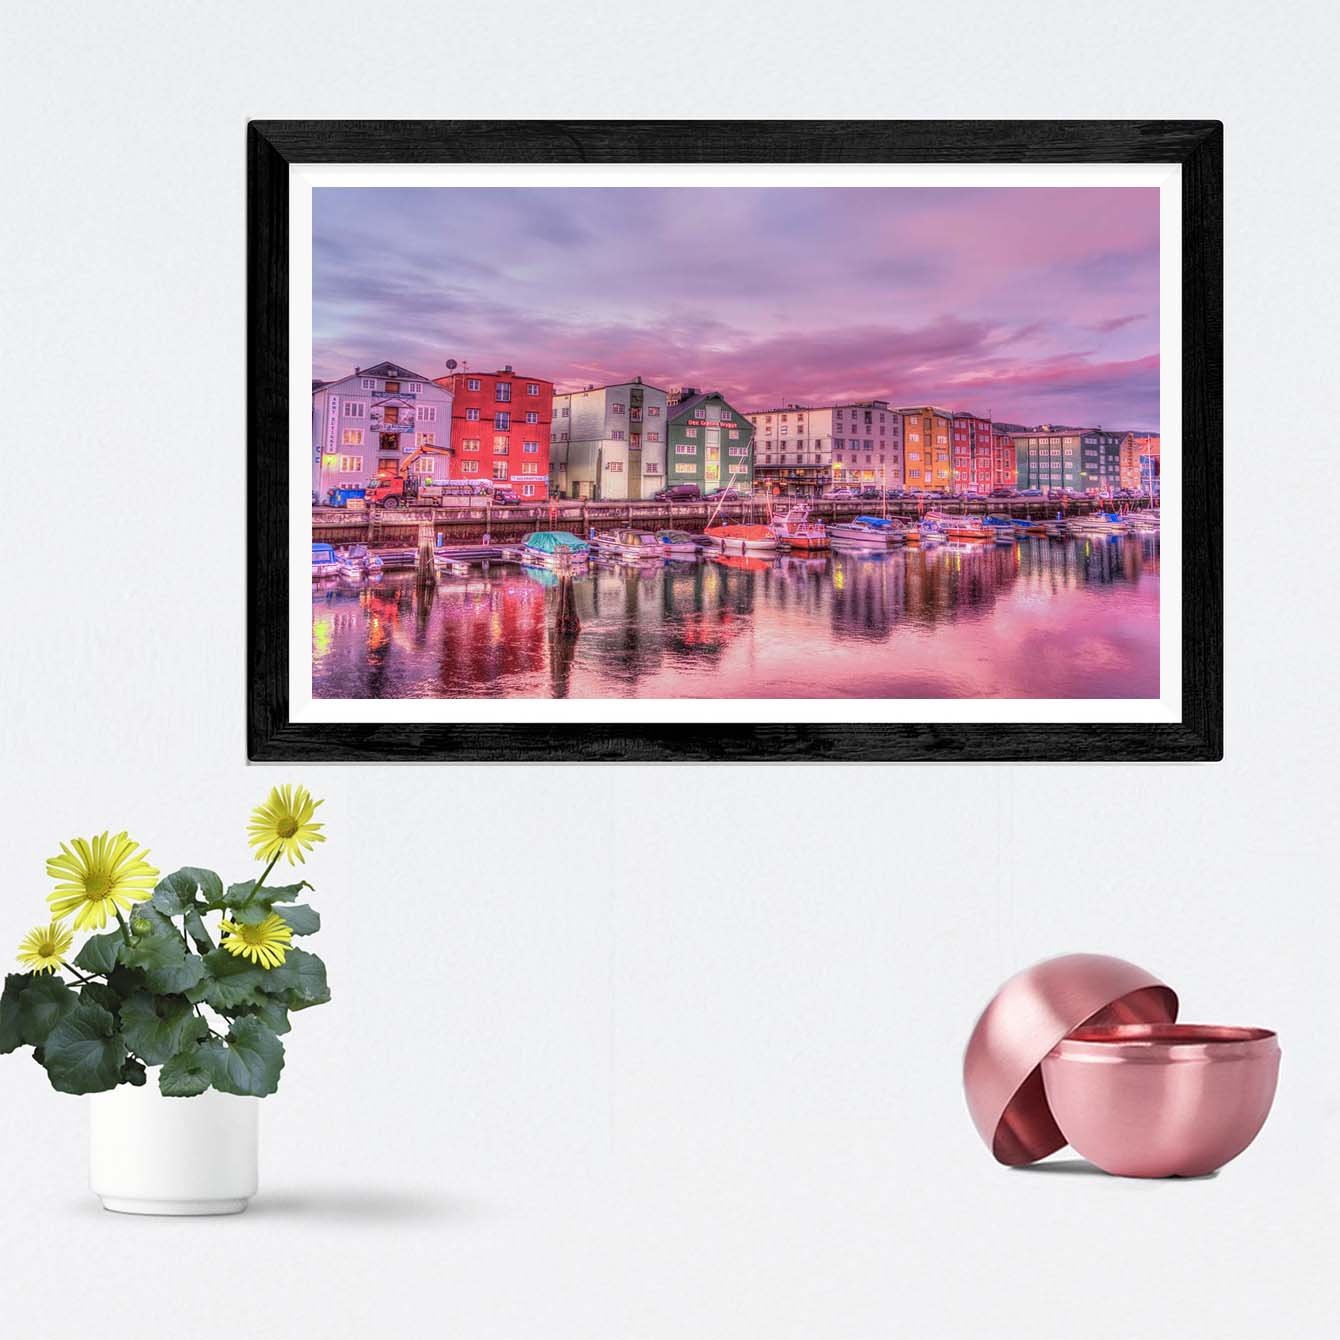 Colorful City Cities Framed Photography